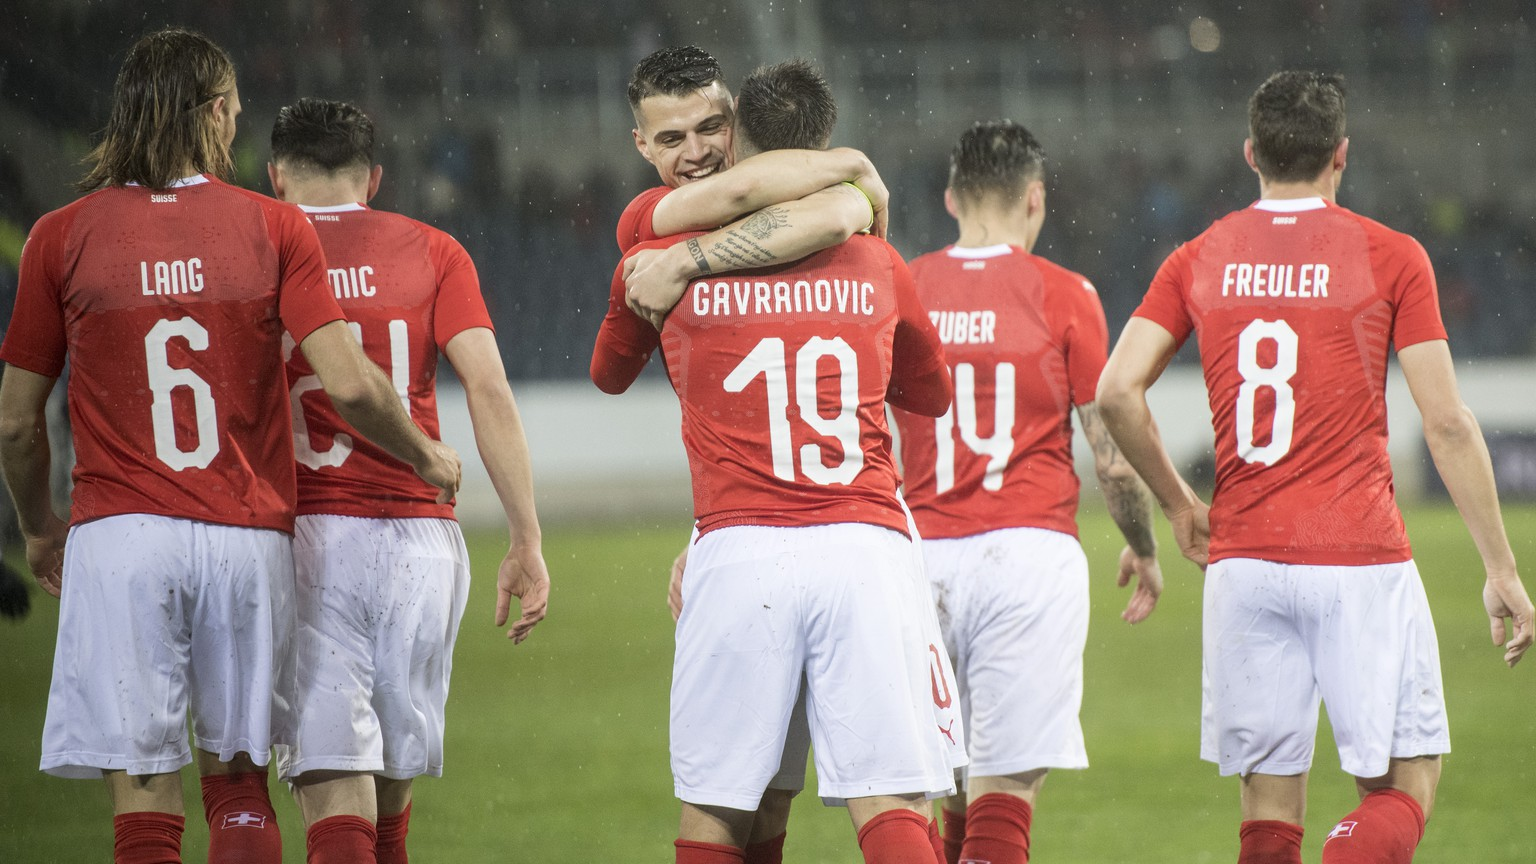 The players of Switzerland reacts after a goal during an international friendly soccer match between Switzerland and Panama at the Swisspor Arena, in Lucerne, Switzerland, Thuesday, March 27, 2018. (KEYSTONE/Urs Flueeler)